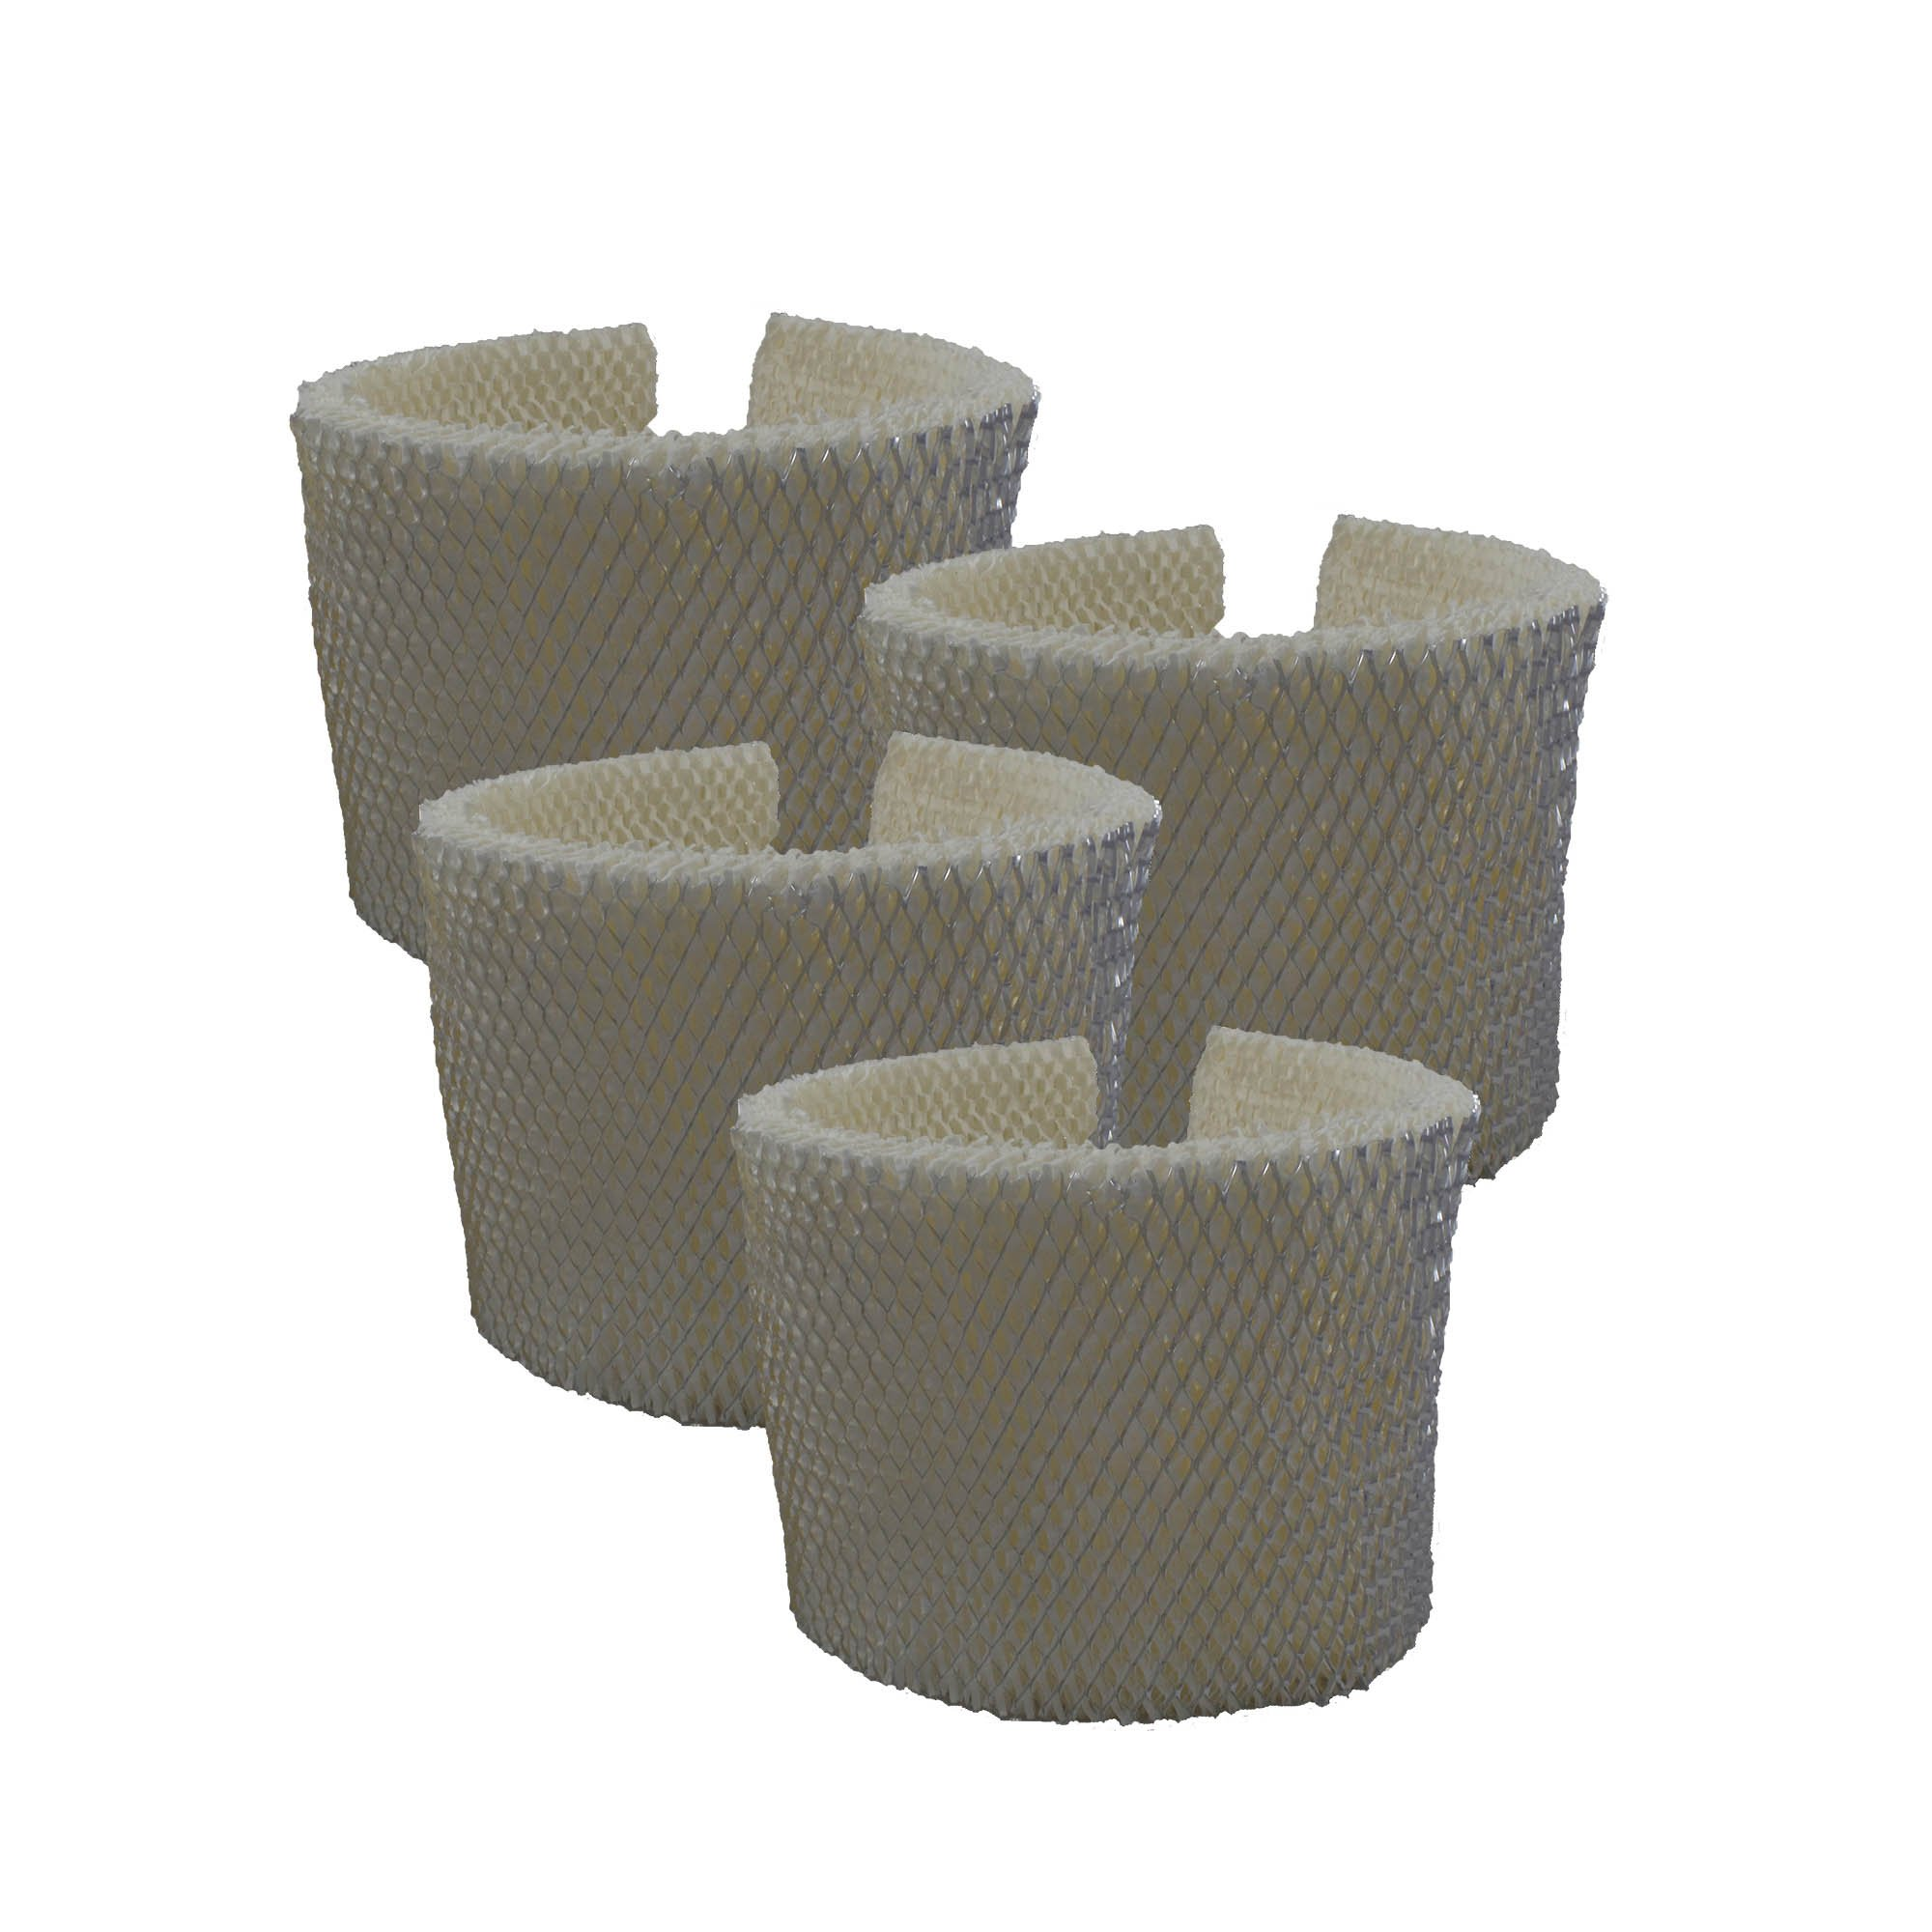 Air Filter Factory 4 Pack Compatible Humidifier Wick Filters For Moistair/Aircare MA0600, MA0601, MA0800, MA08000, MA800